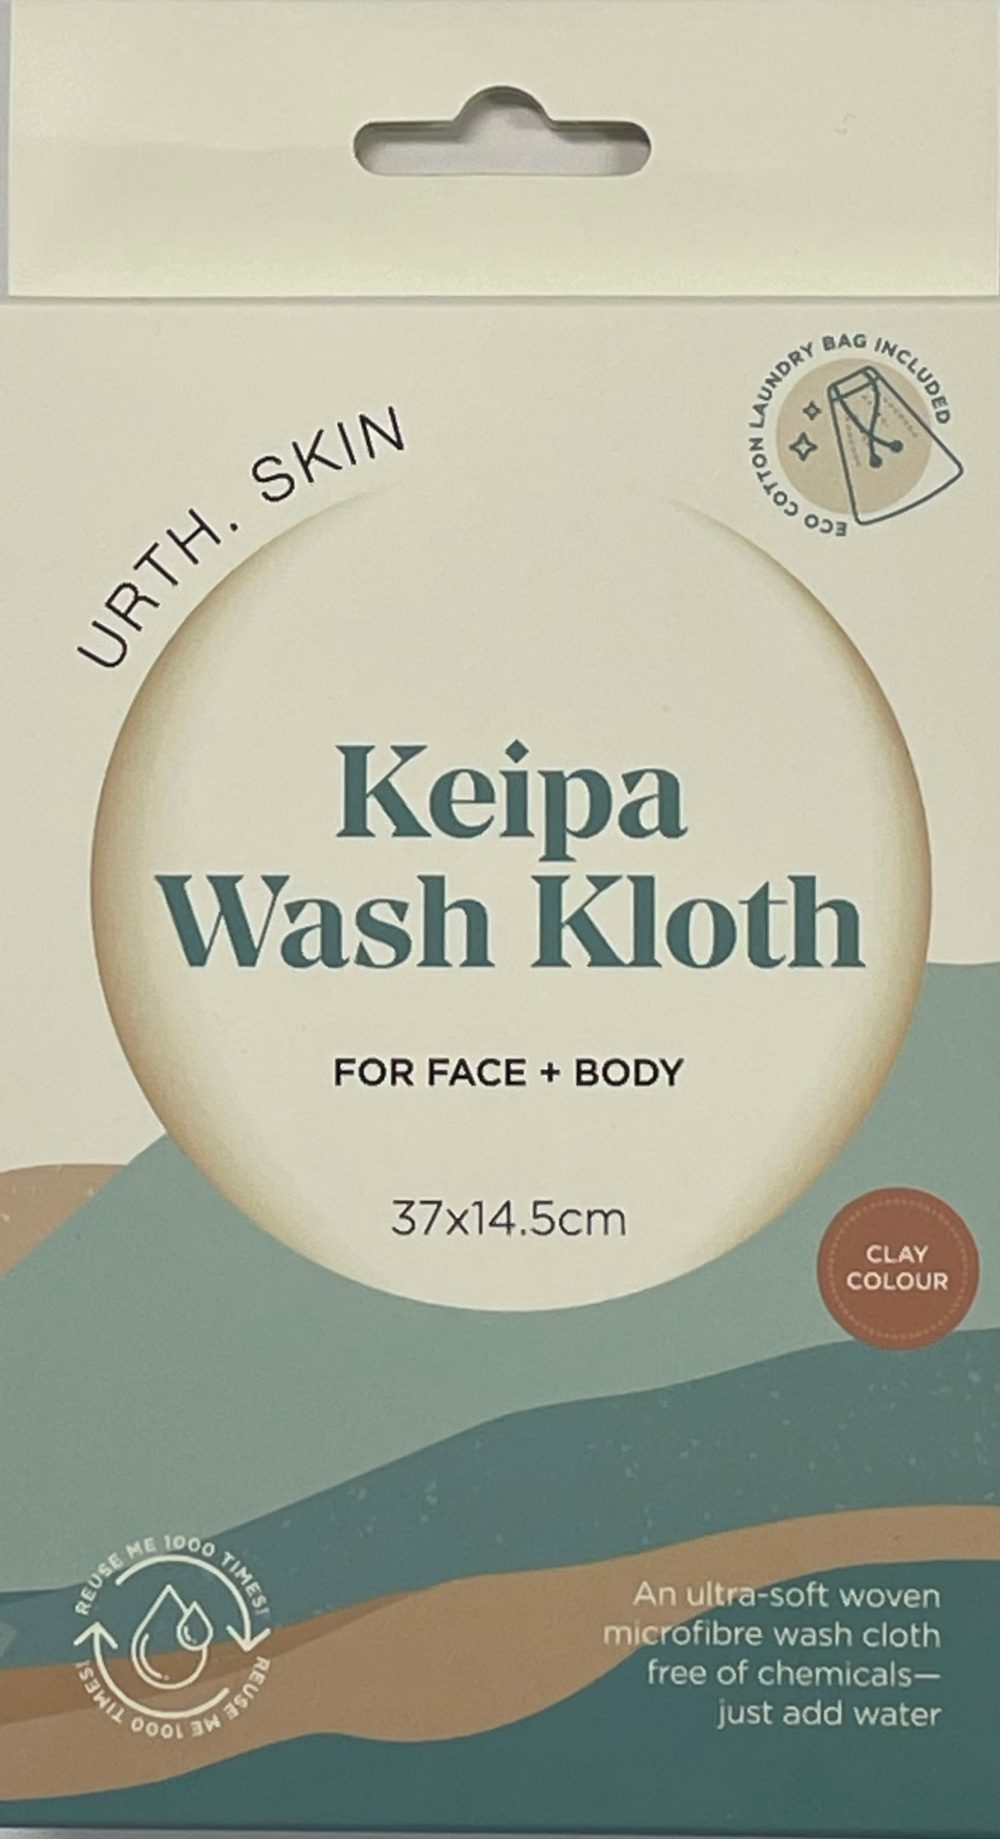 Keipa Wash Kloth